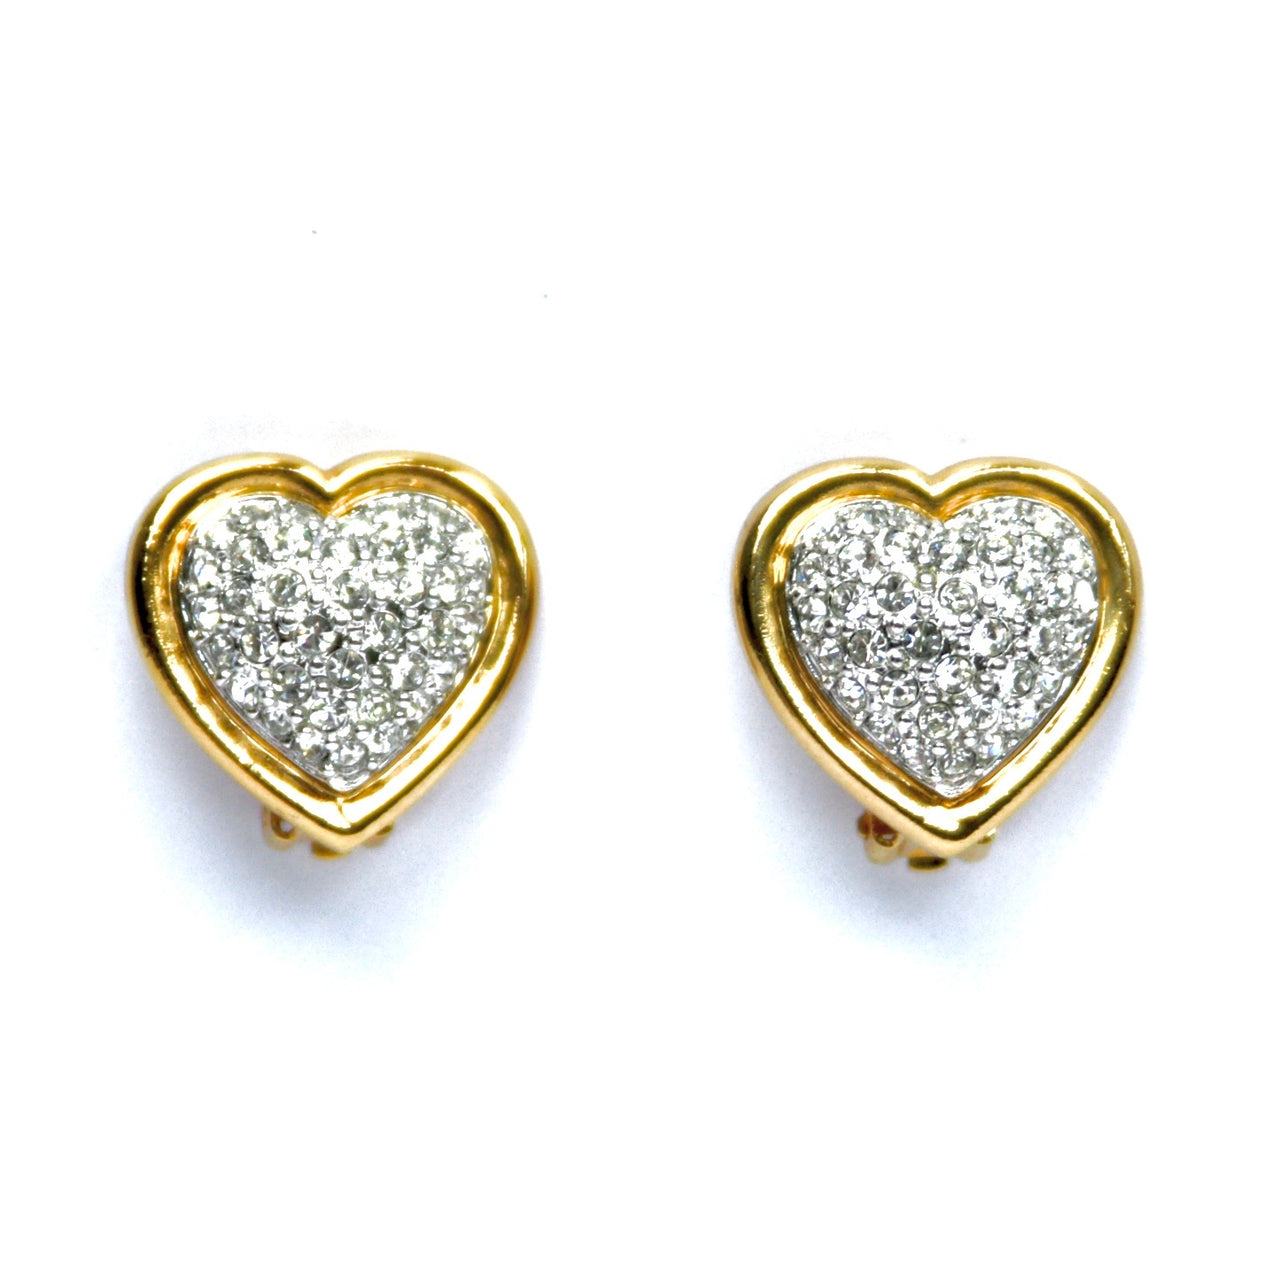 Gold plated 1980s Vintage Swarovski Crystal Heart Clip On Earrings